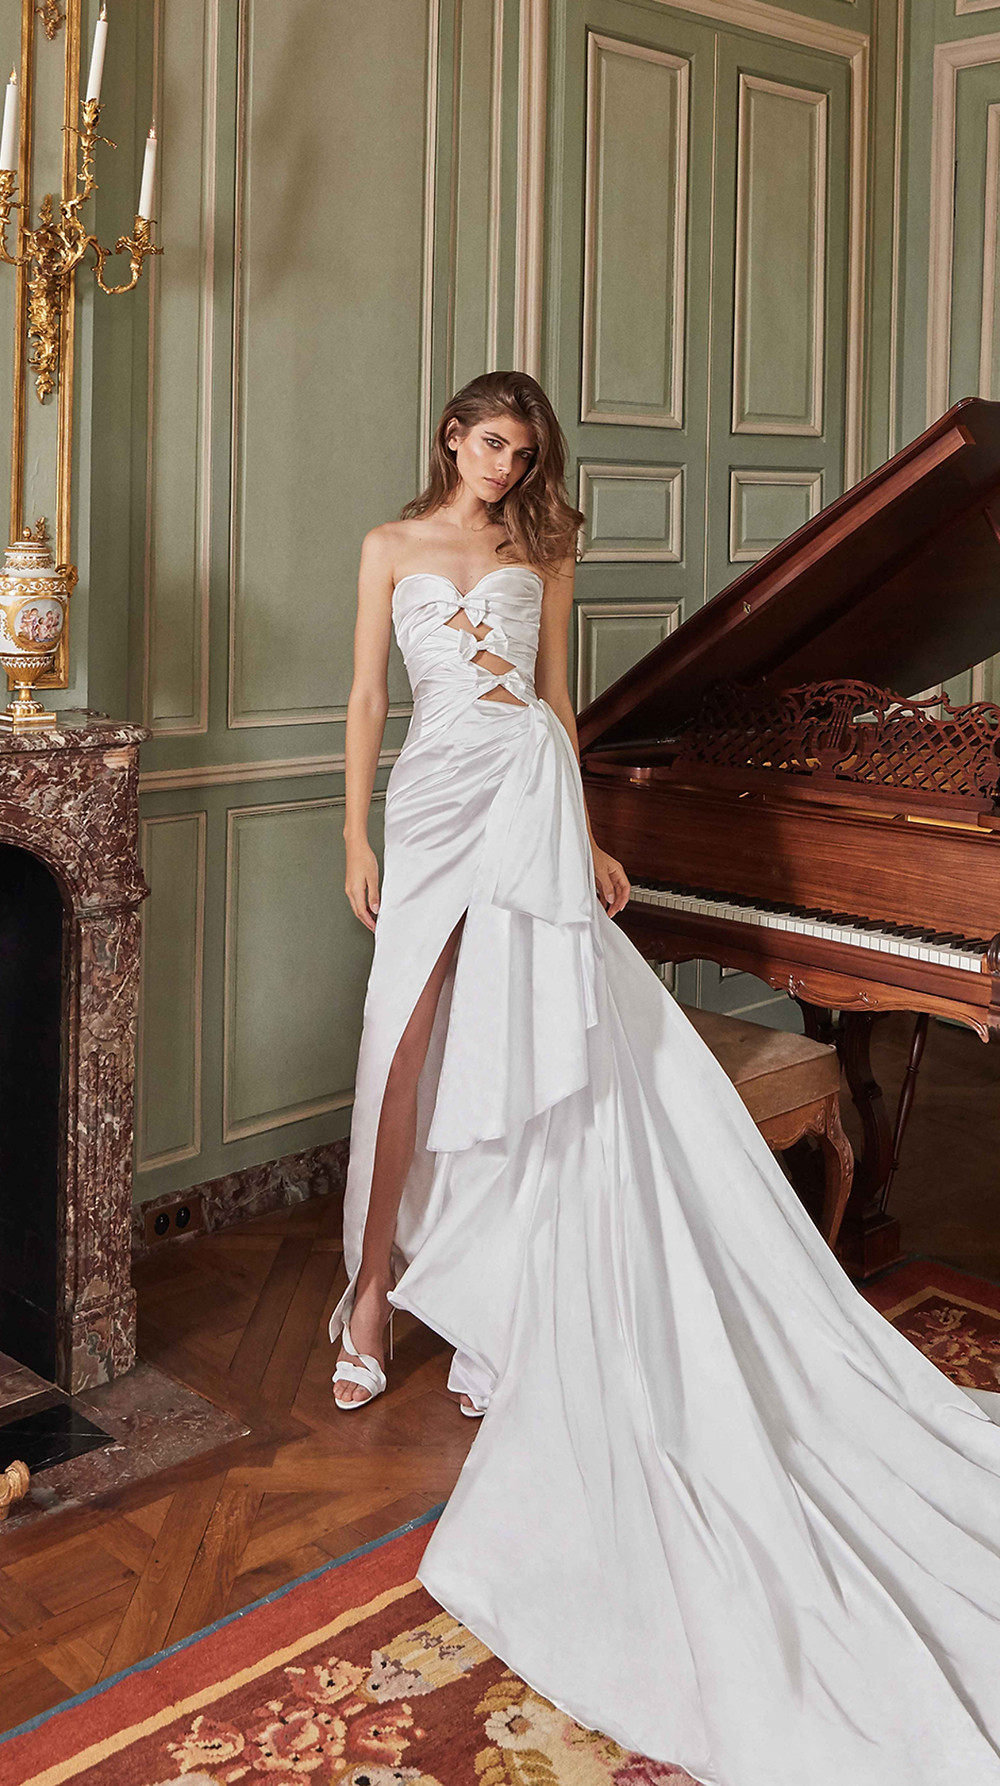 A dramatically draped ball gown wedding dress with cutouts and silk bows, this asymmetrical stunner features a high slit and a side bow in a soft silk duchess satin